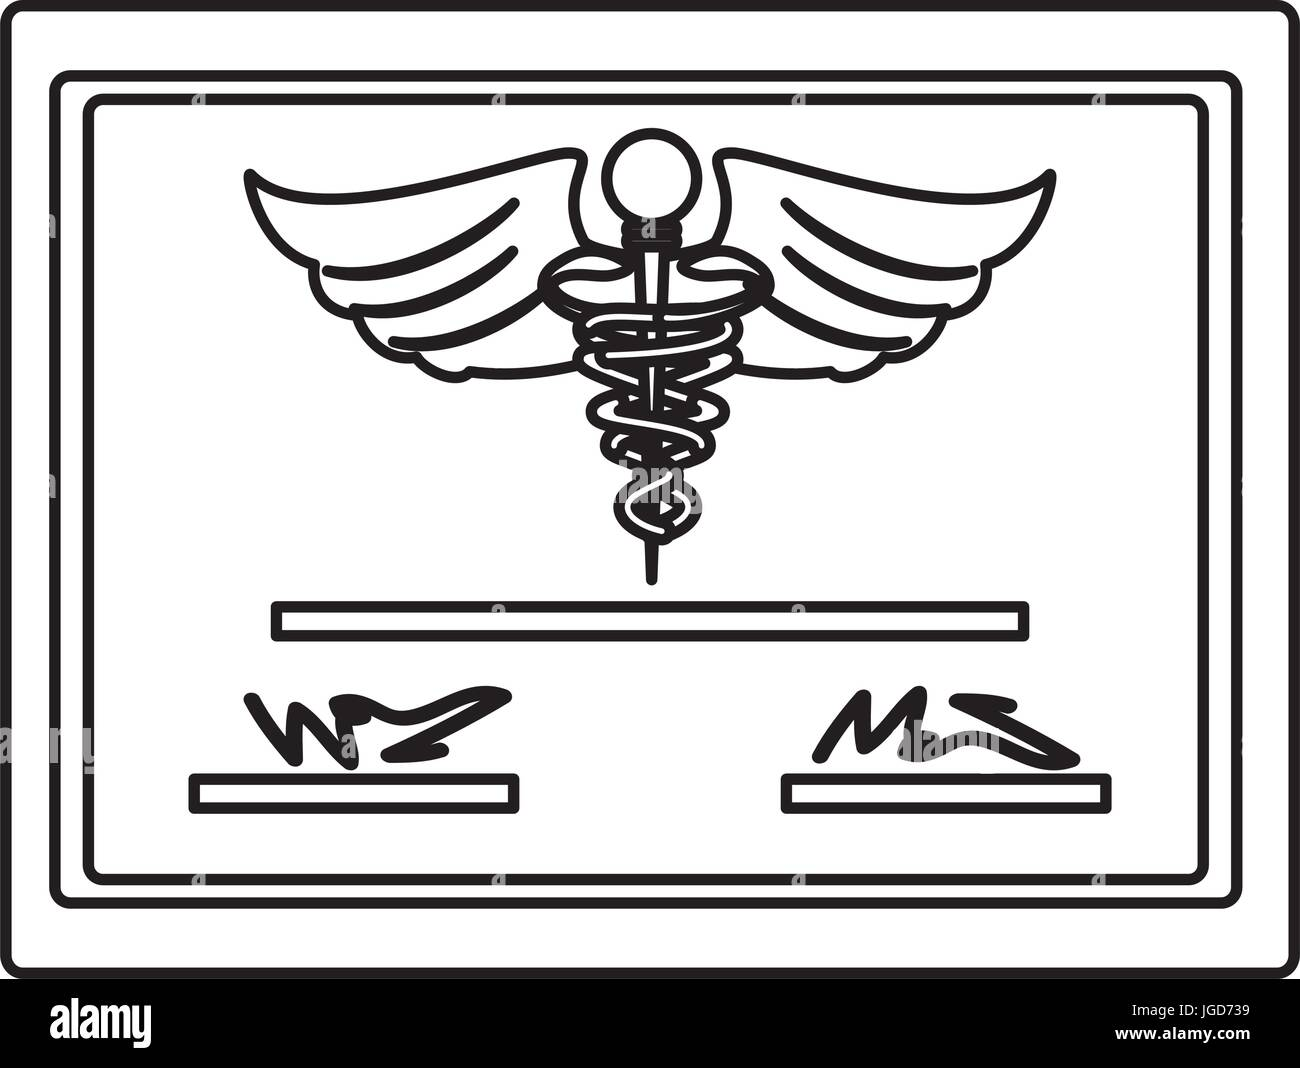 Medical Diploma Certification Icon Vector Illustration Graphic